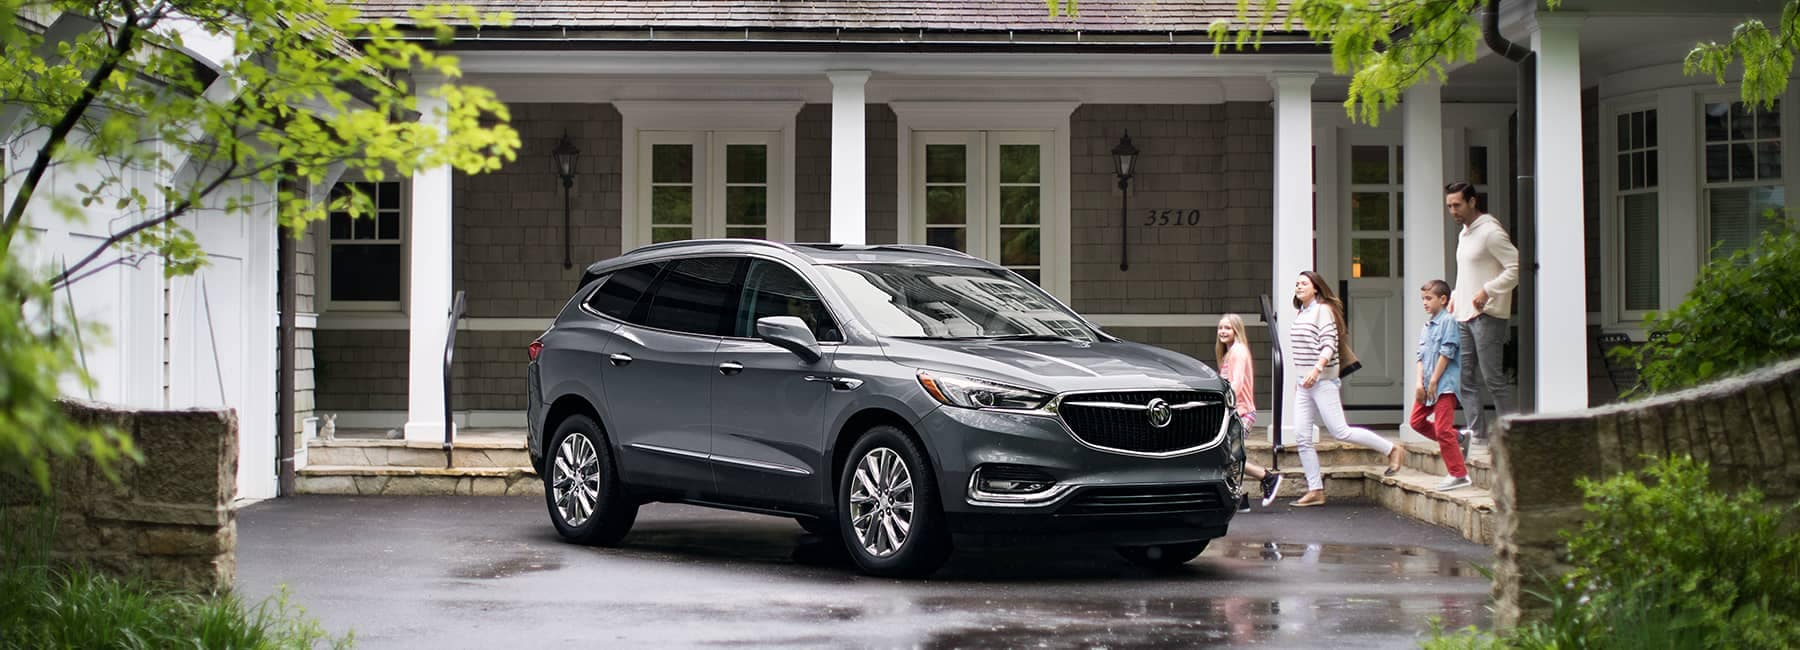 buick car and family